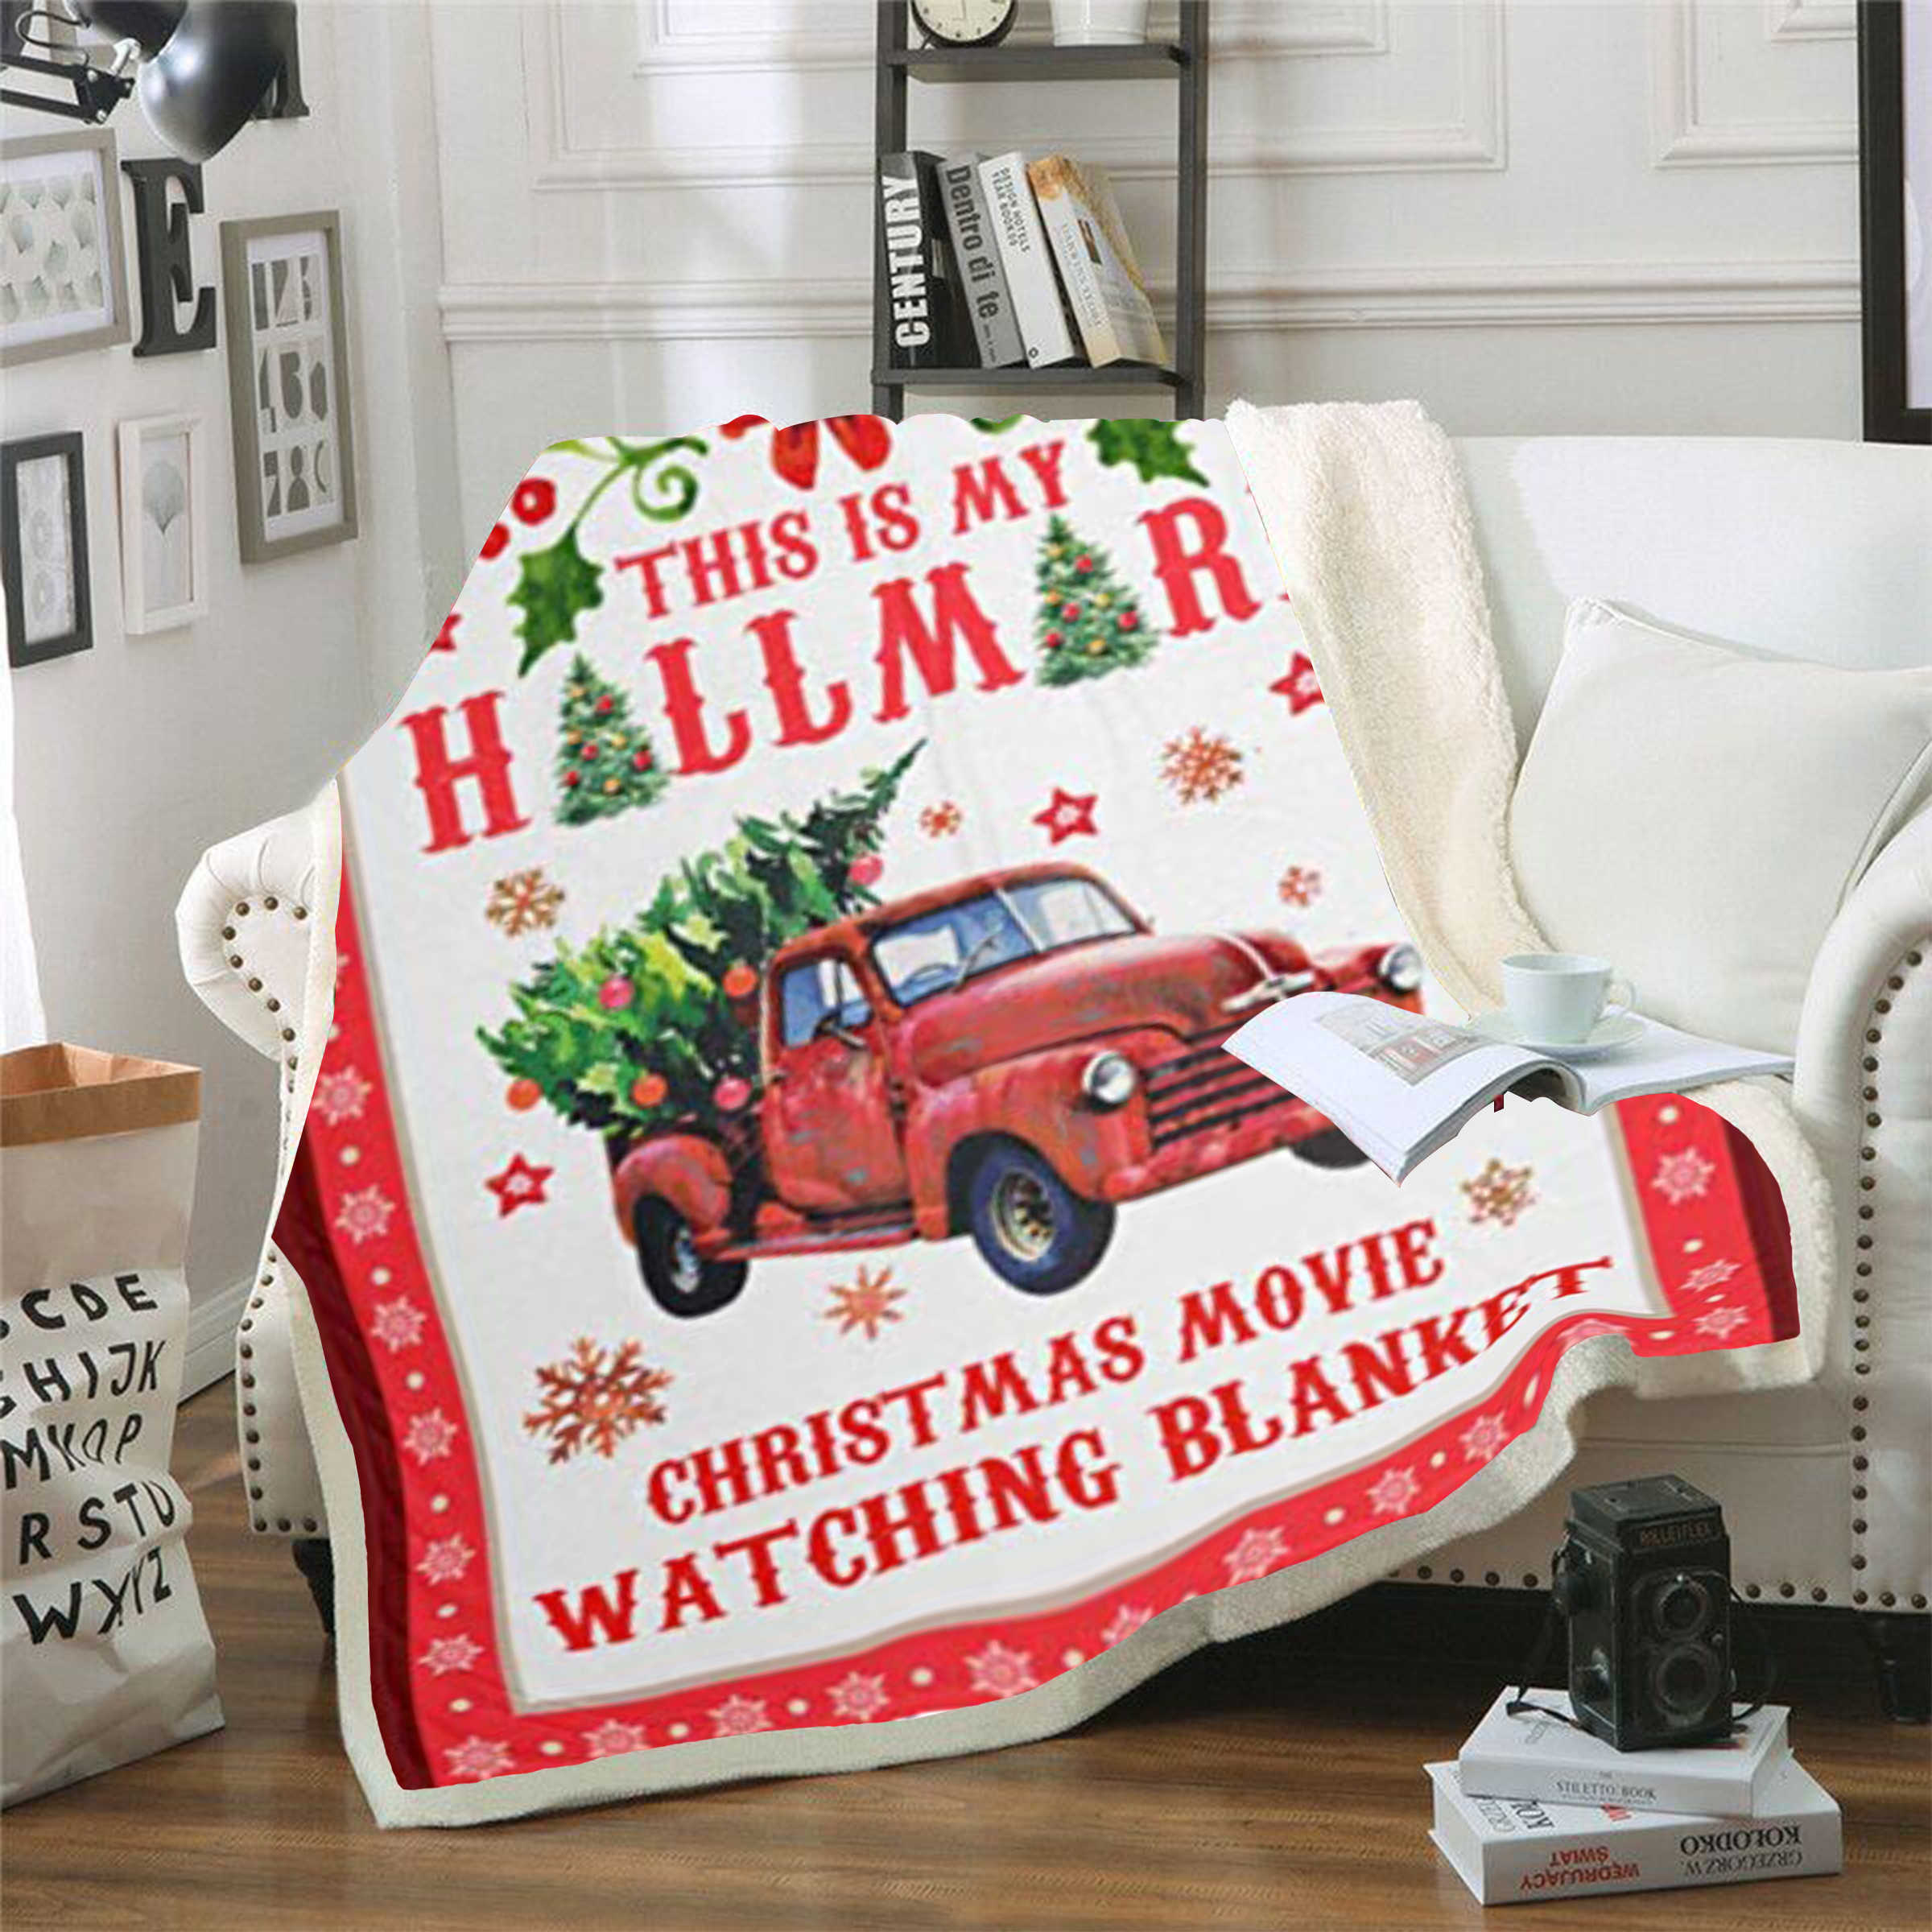 Christmas Watching Blanket Printed Sherpa Blanket Couch Travel Bedding Fleece Blanket Thick Tapestry Hallmark Movies Blanket